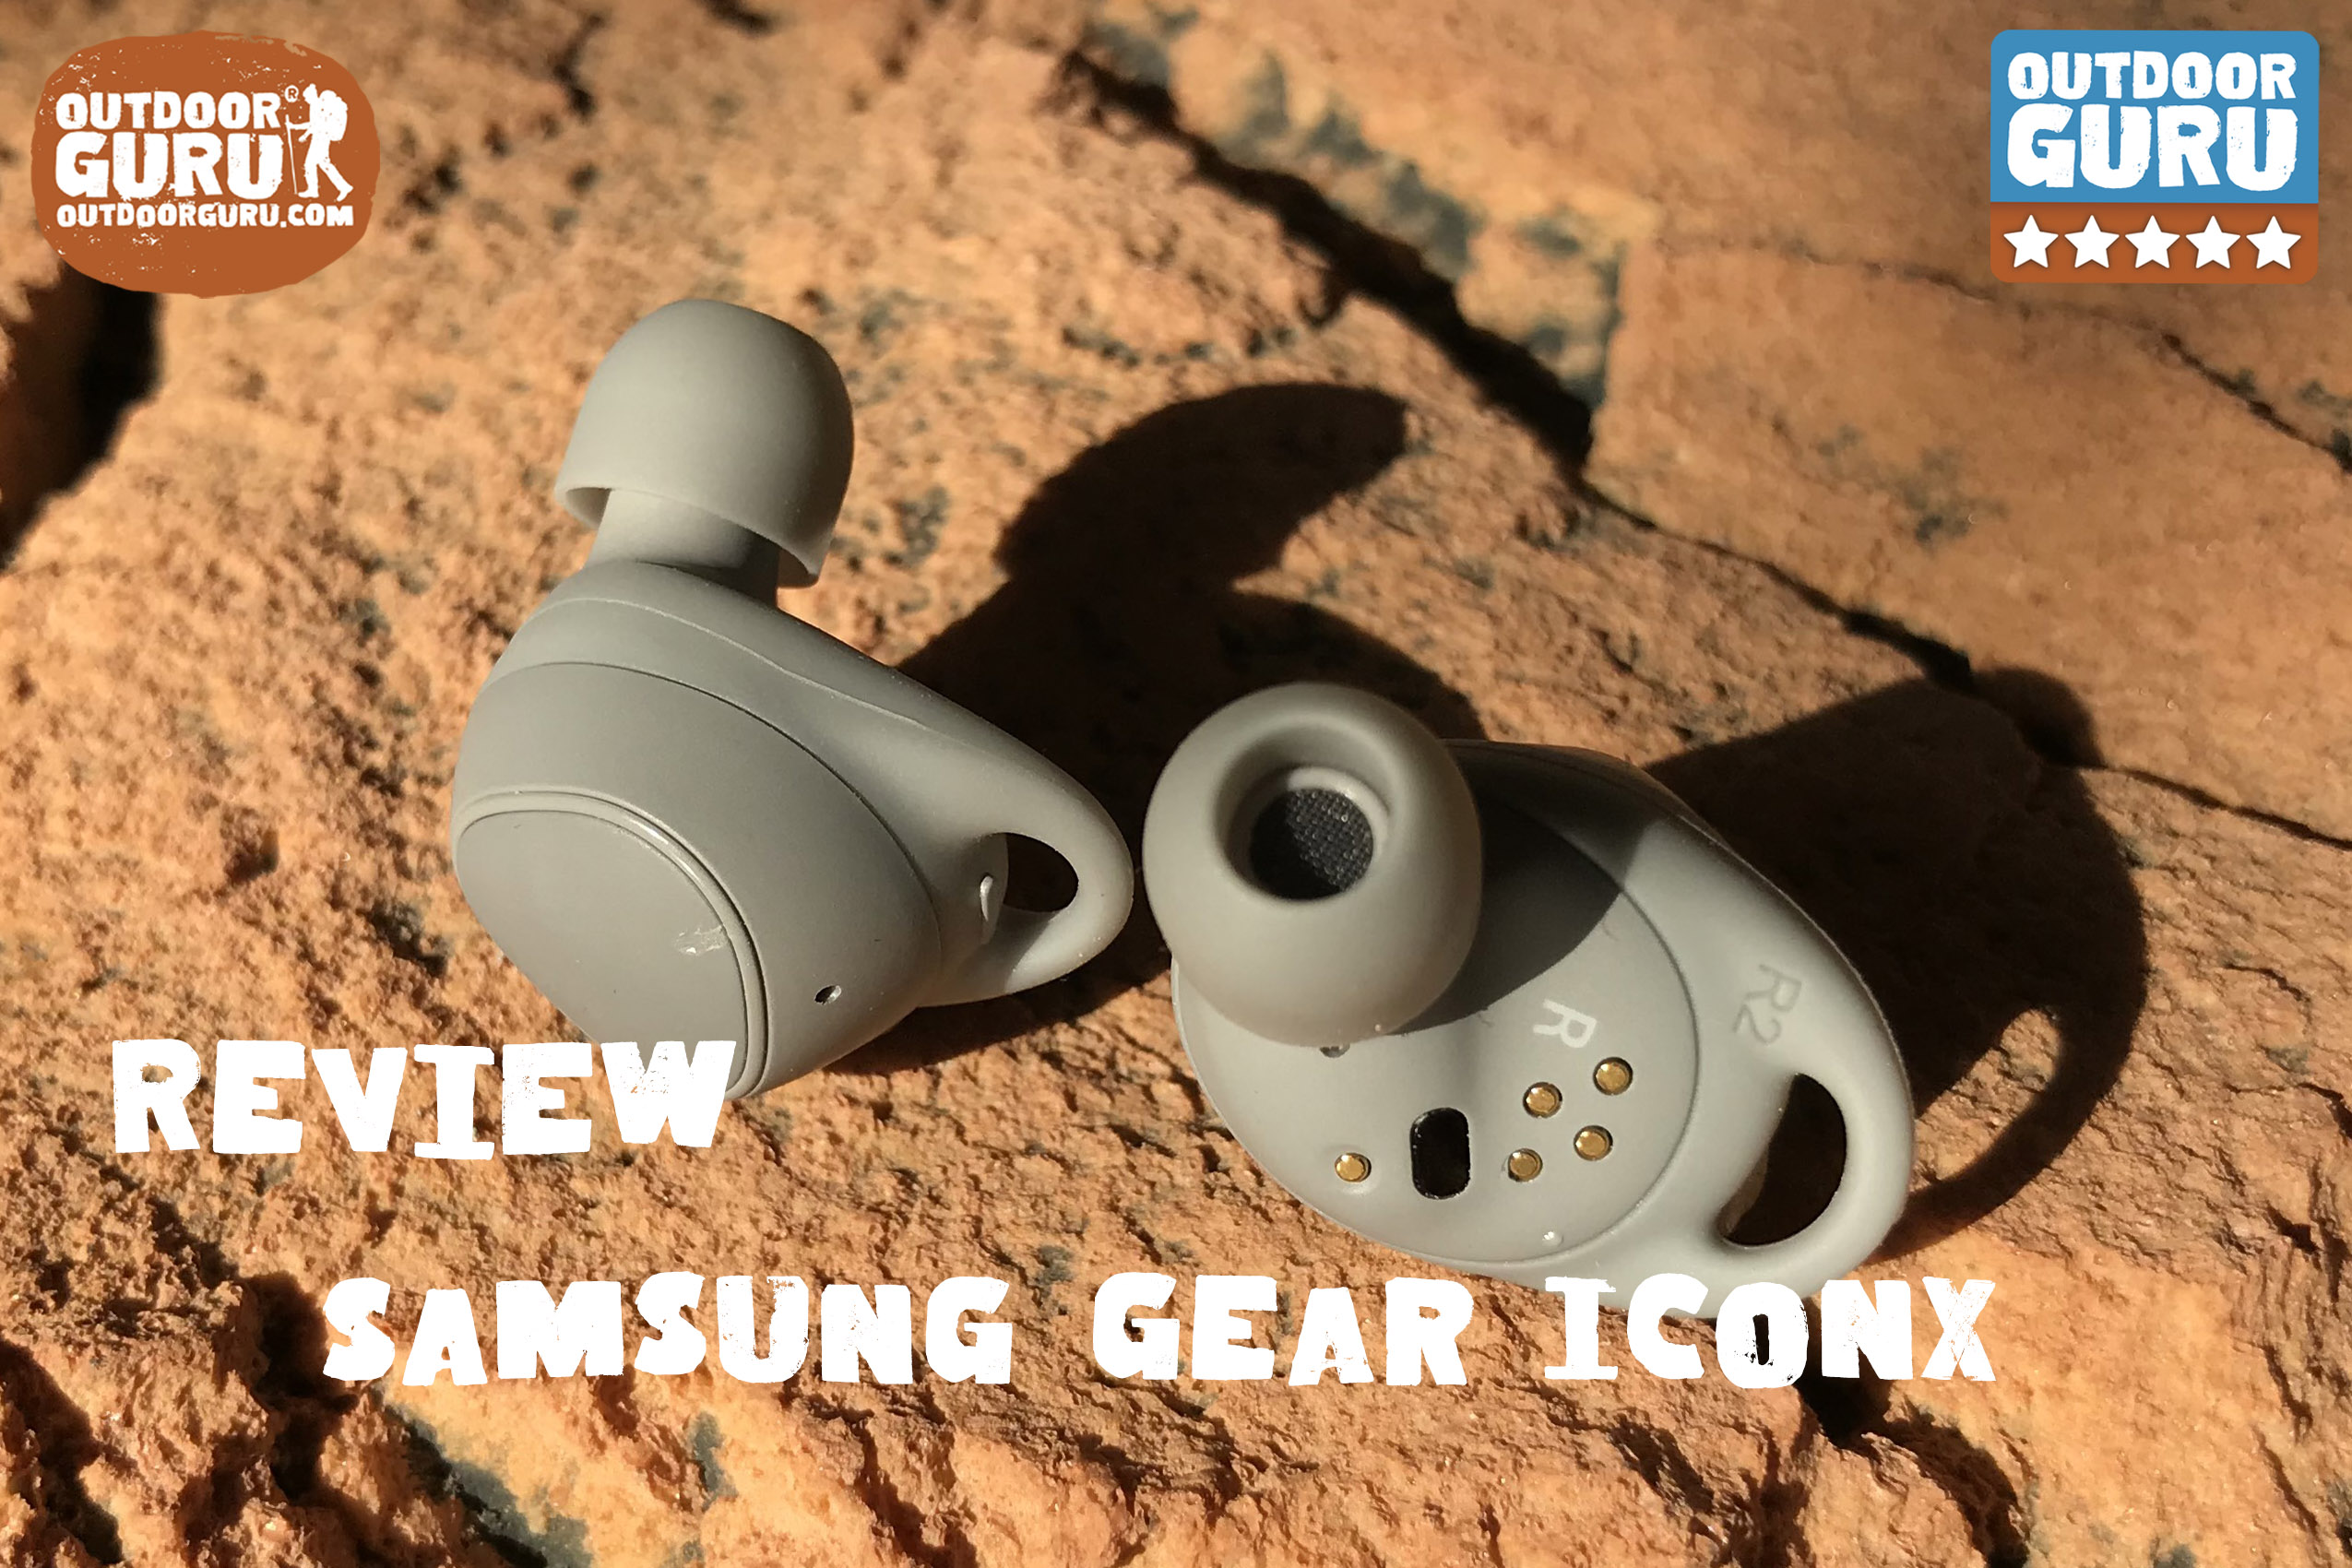 Review Samsung Gear IconX